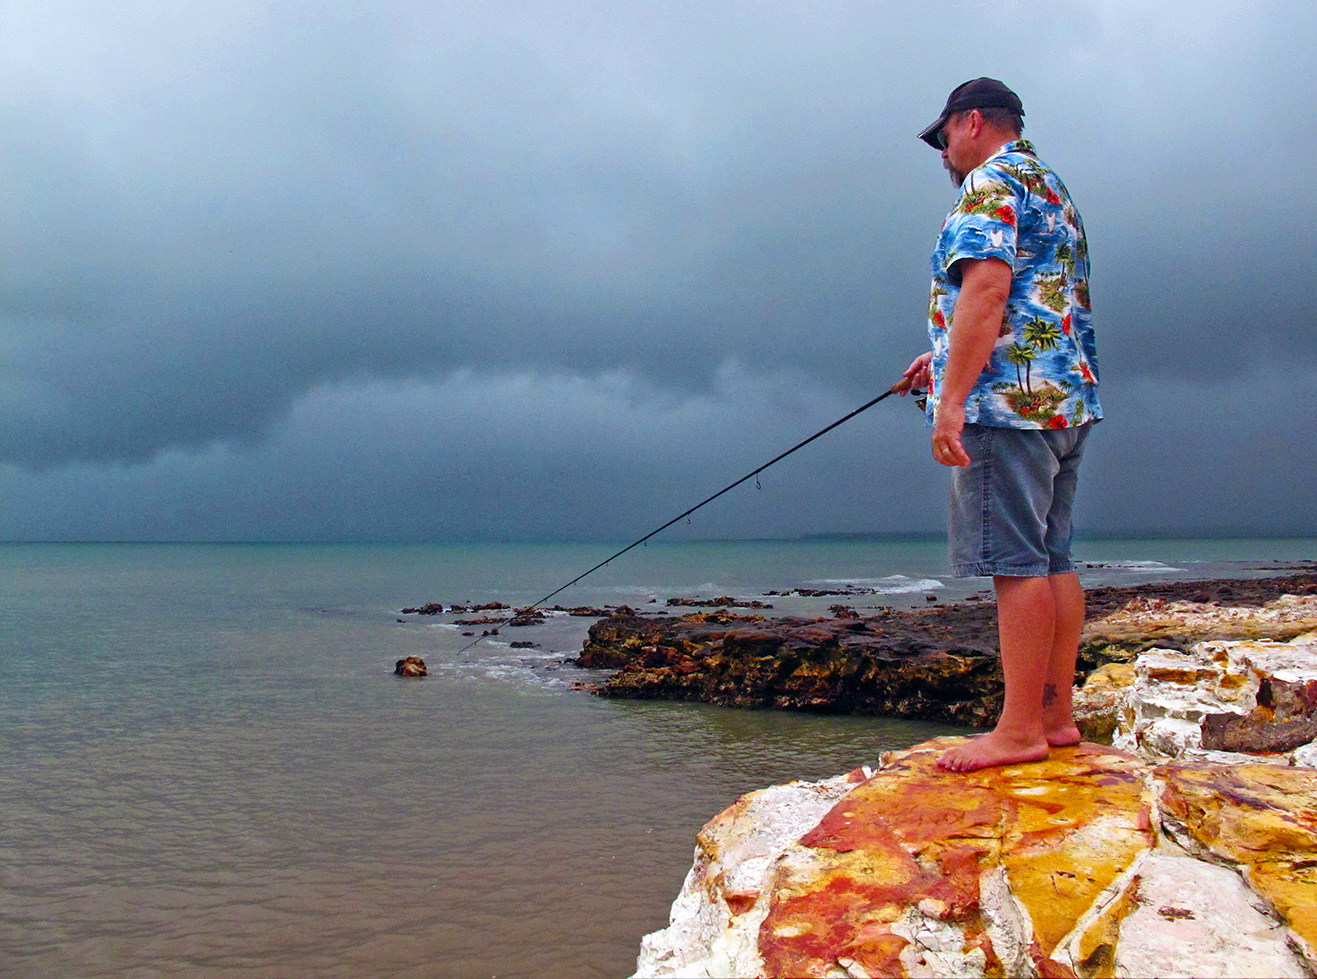 Starlo fishes from the rocks at East Point under a rather ominous Wet Season sky.